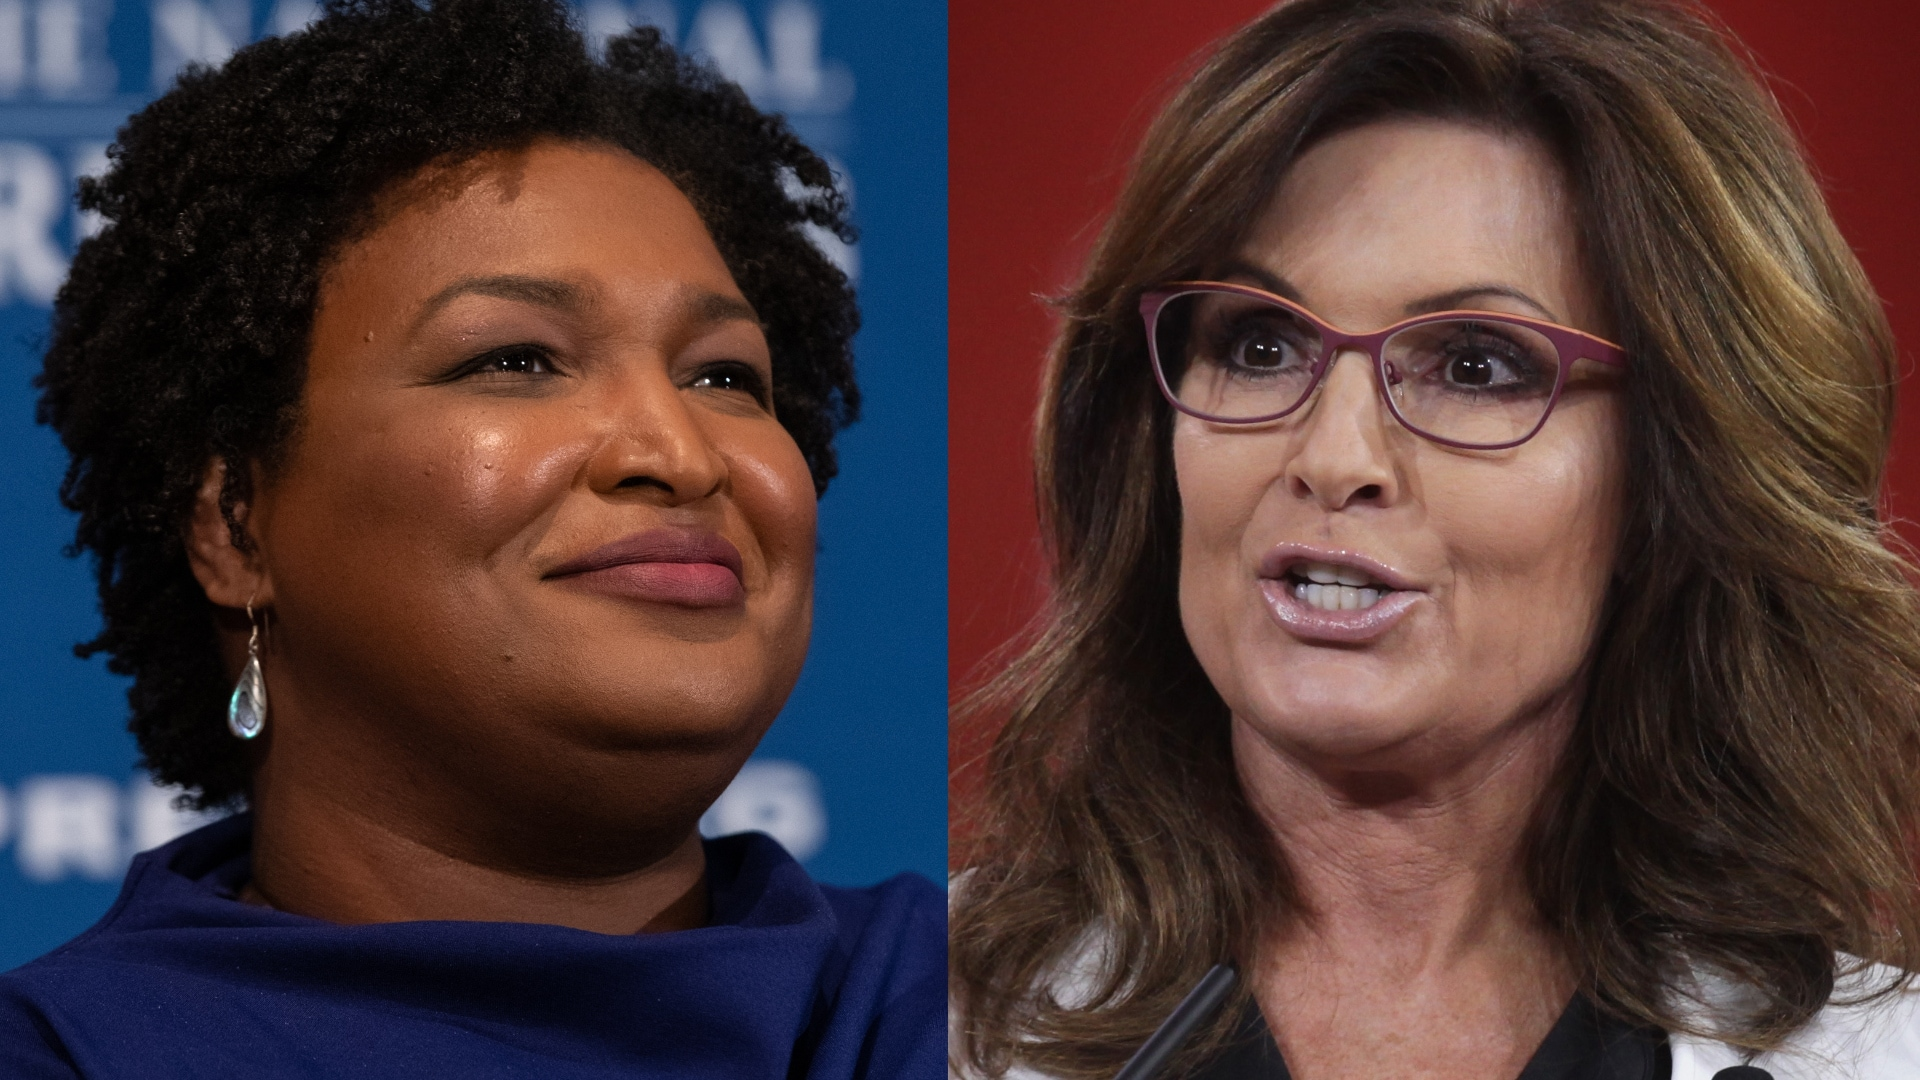 Stacey Abrams is nobody's Sarah Palin. Put some respect on her name